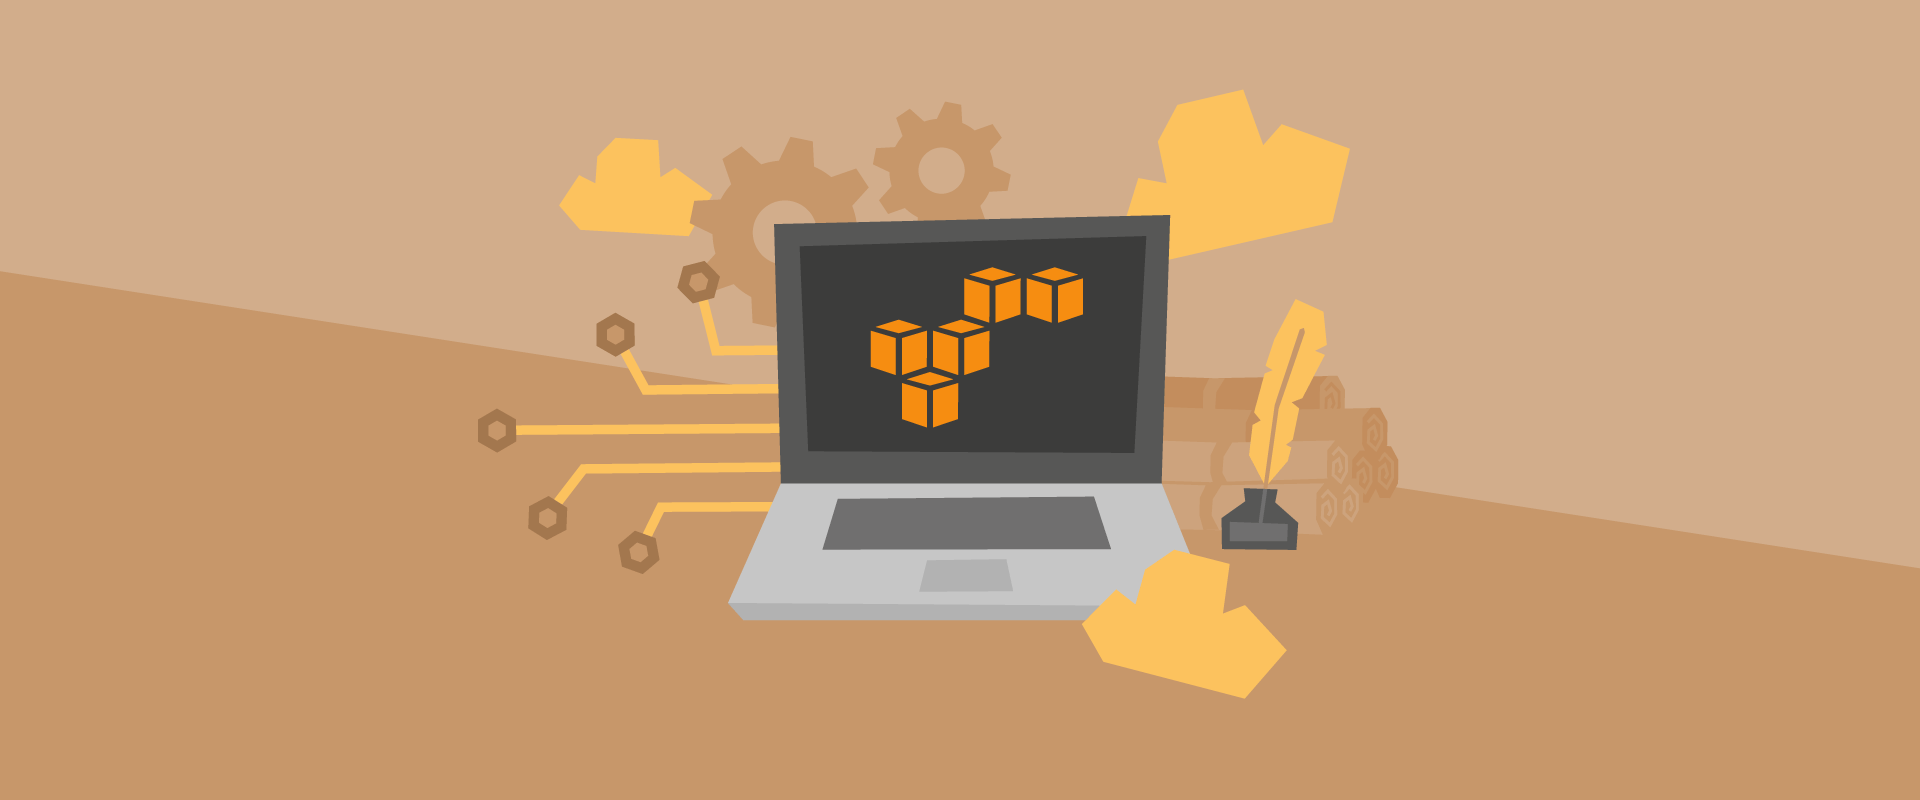 How Does Headless CMS Fit into an AWS Setup?